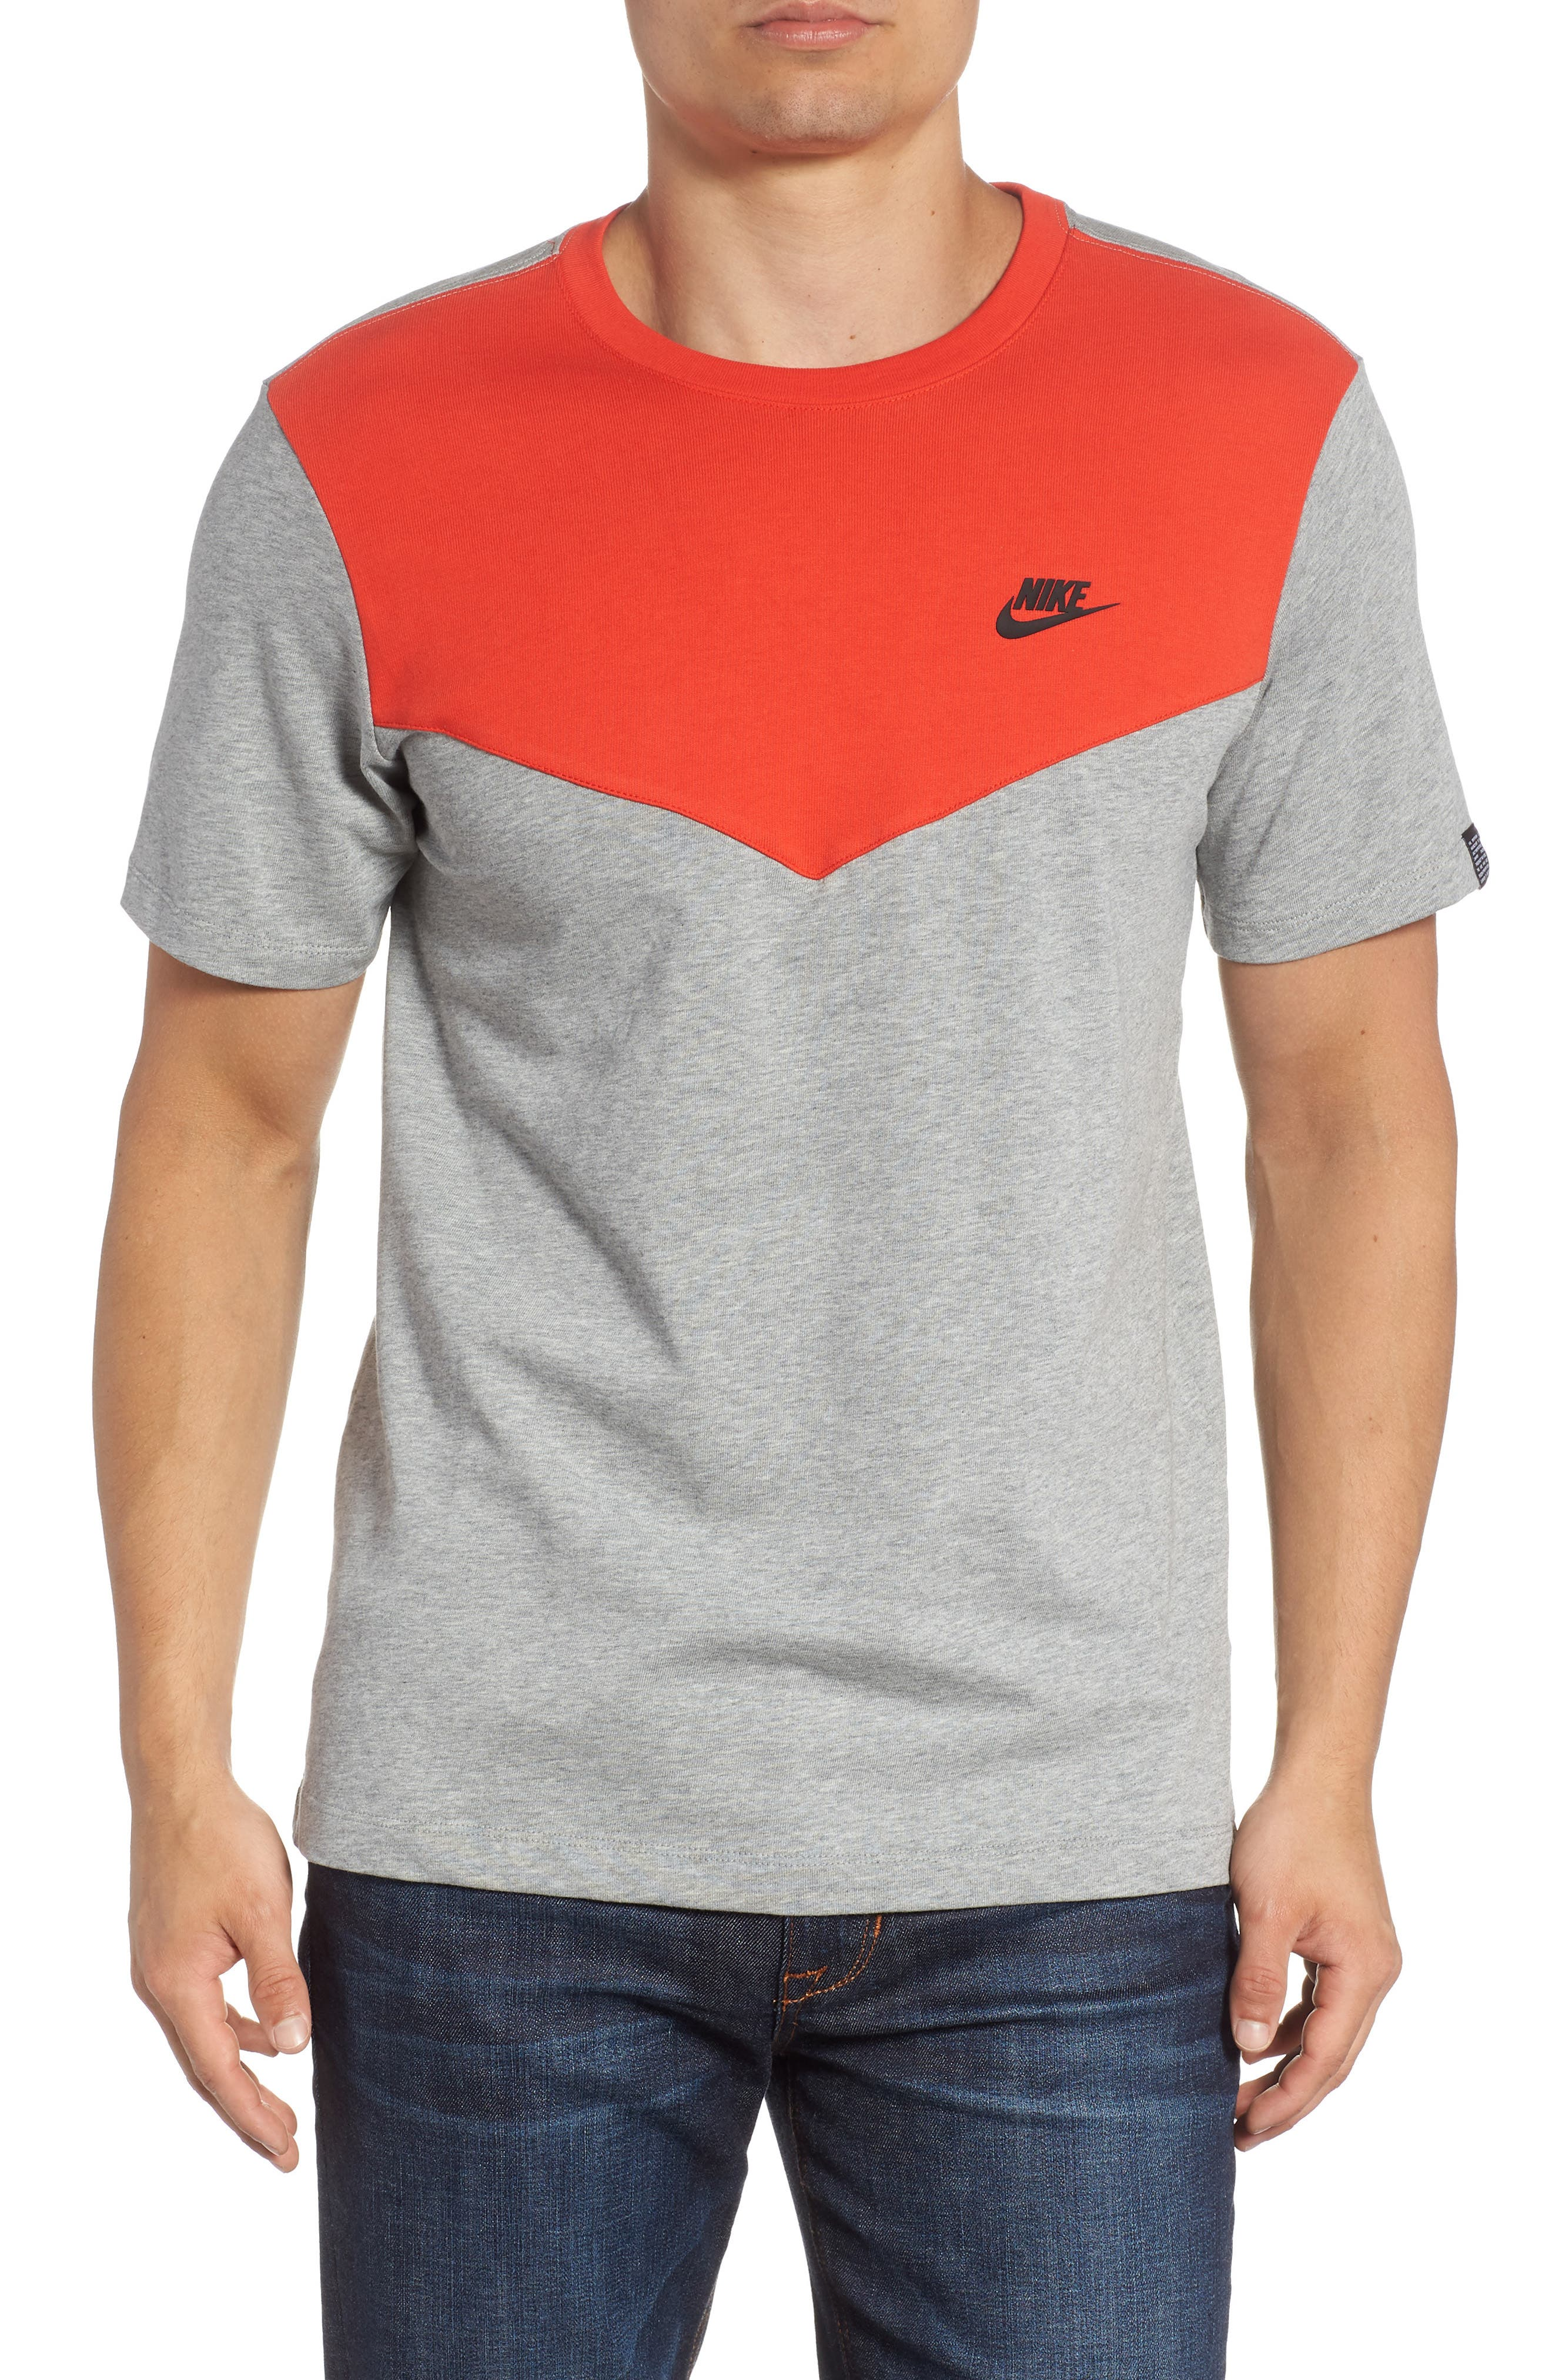 Windrunner Colorblocked T-Shirt,                         Main,                         color, HABANERO RED/ HEATHER/ BLACK